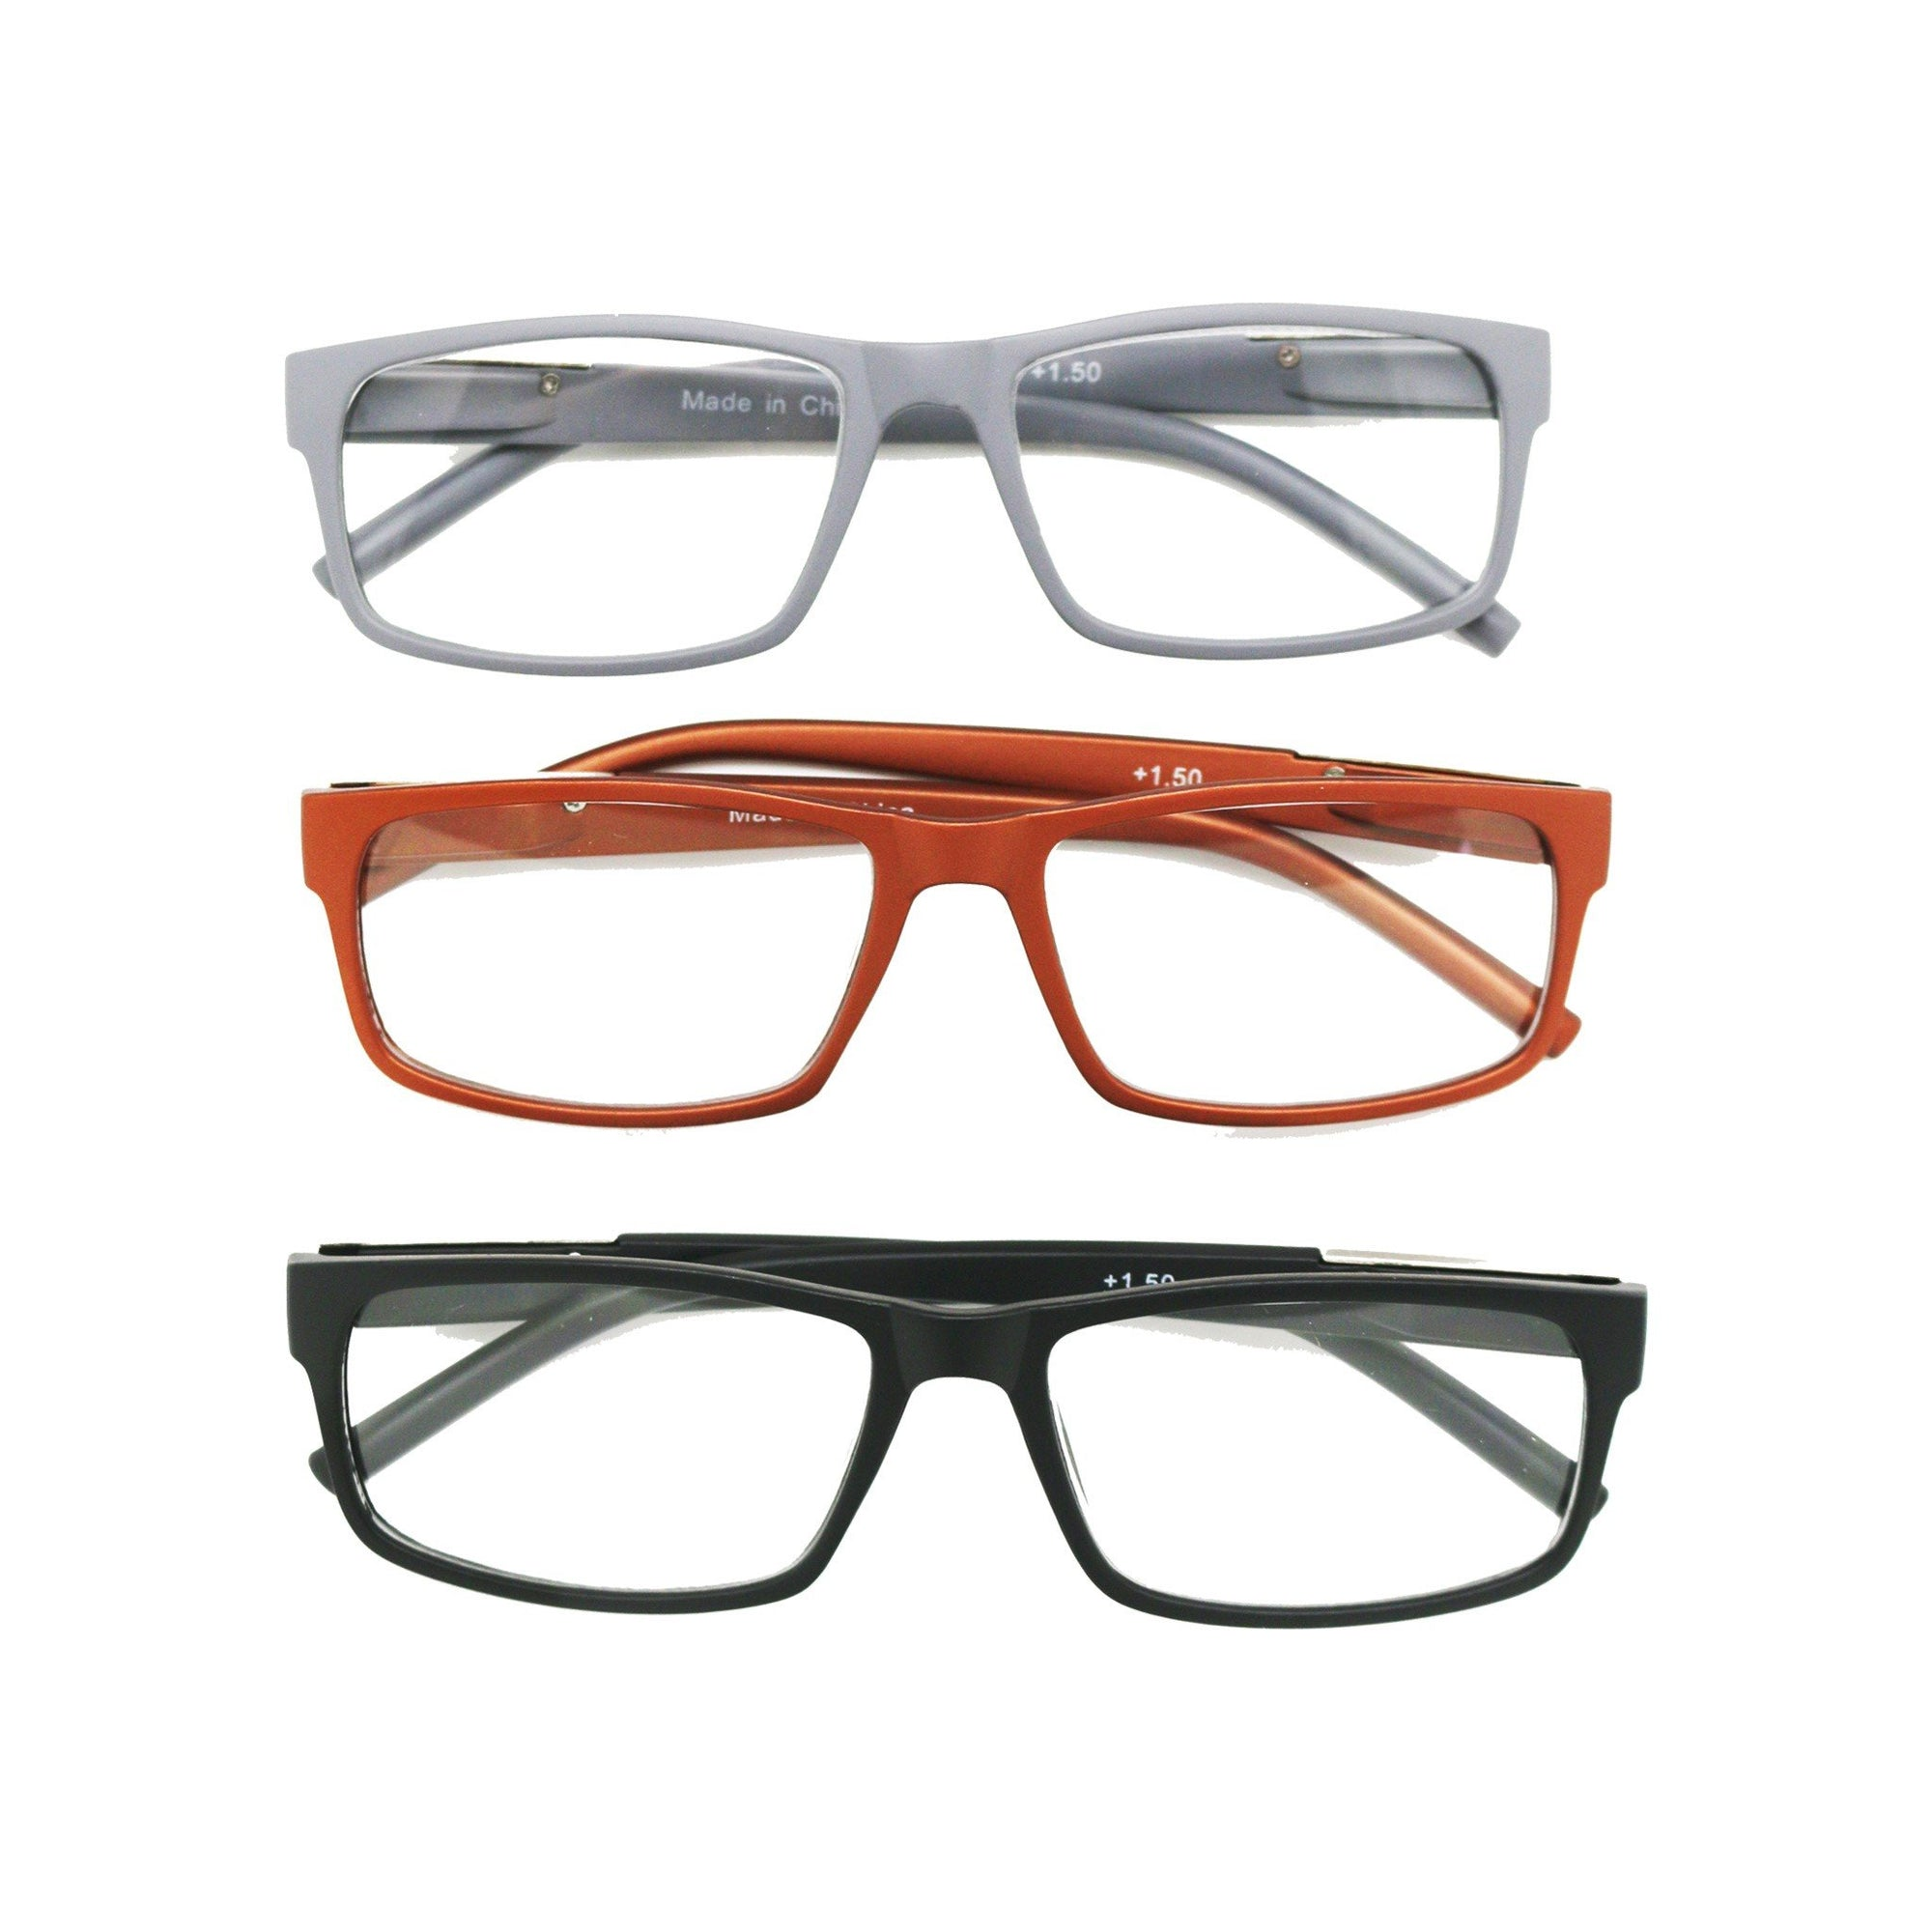 Casa Mens Reading Glasses +2.0 Magnification 3pk